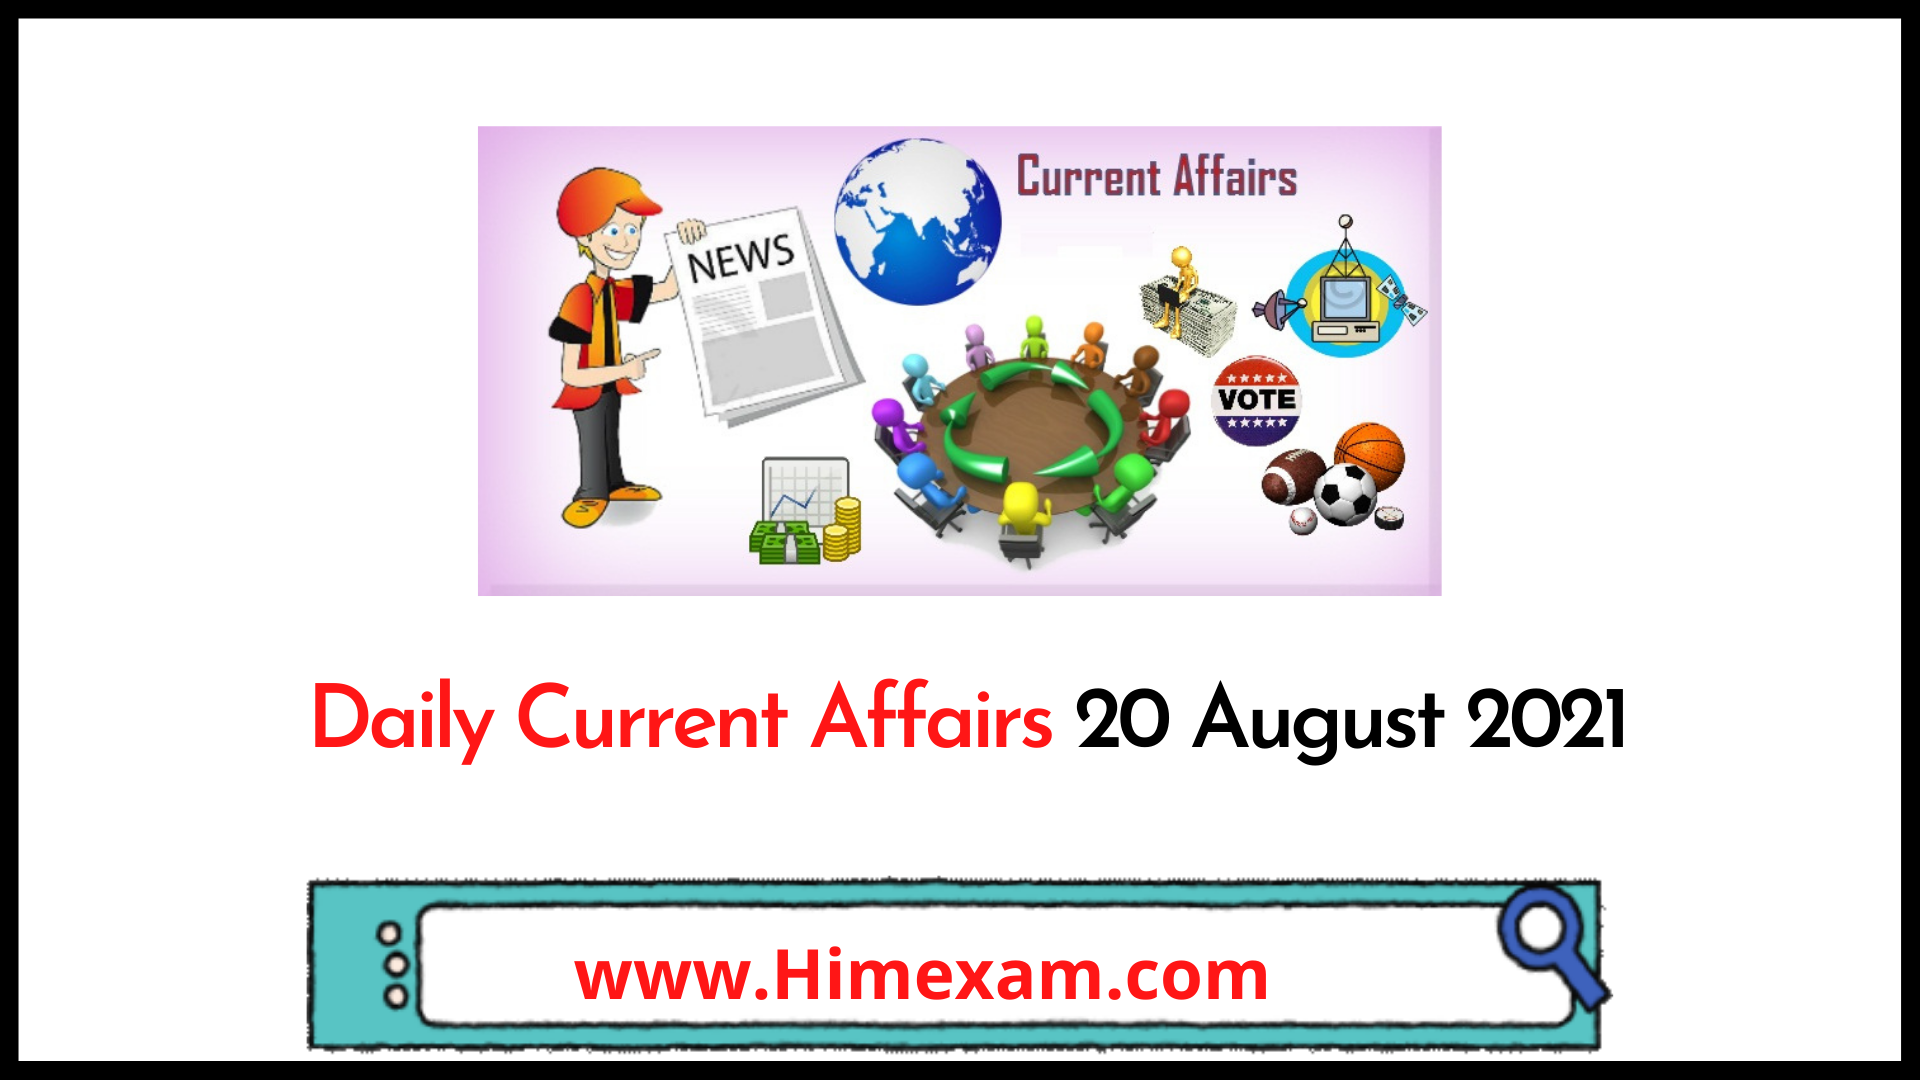 Daily Current Affairs 20 August 2021